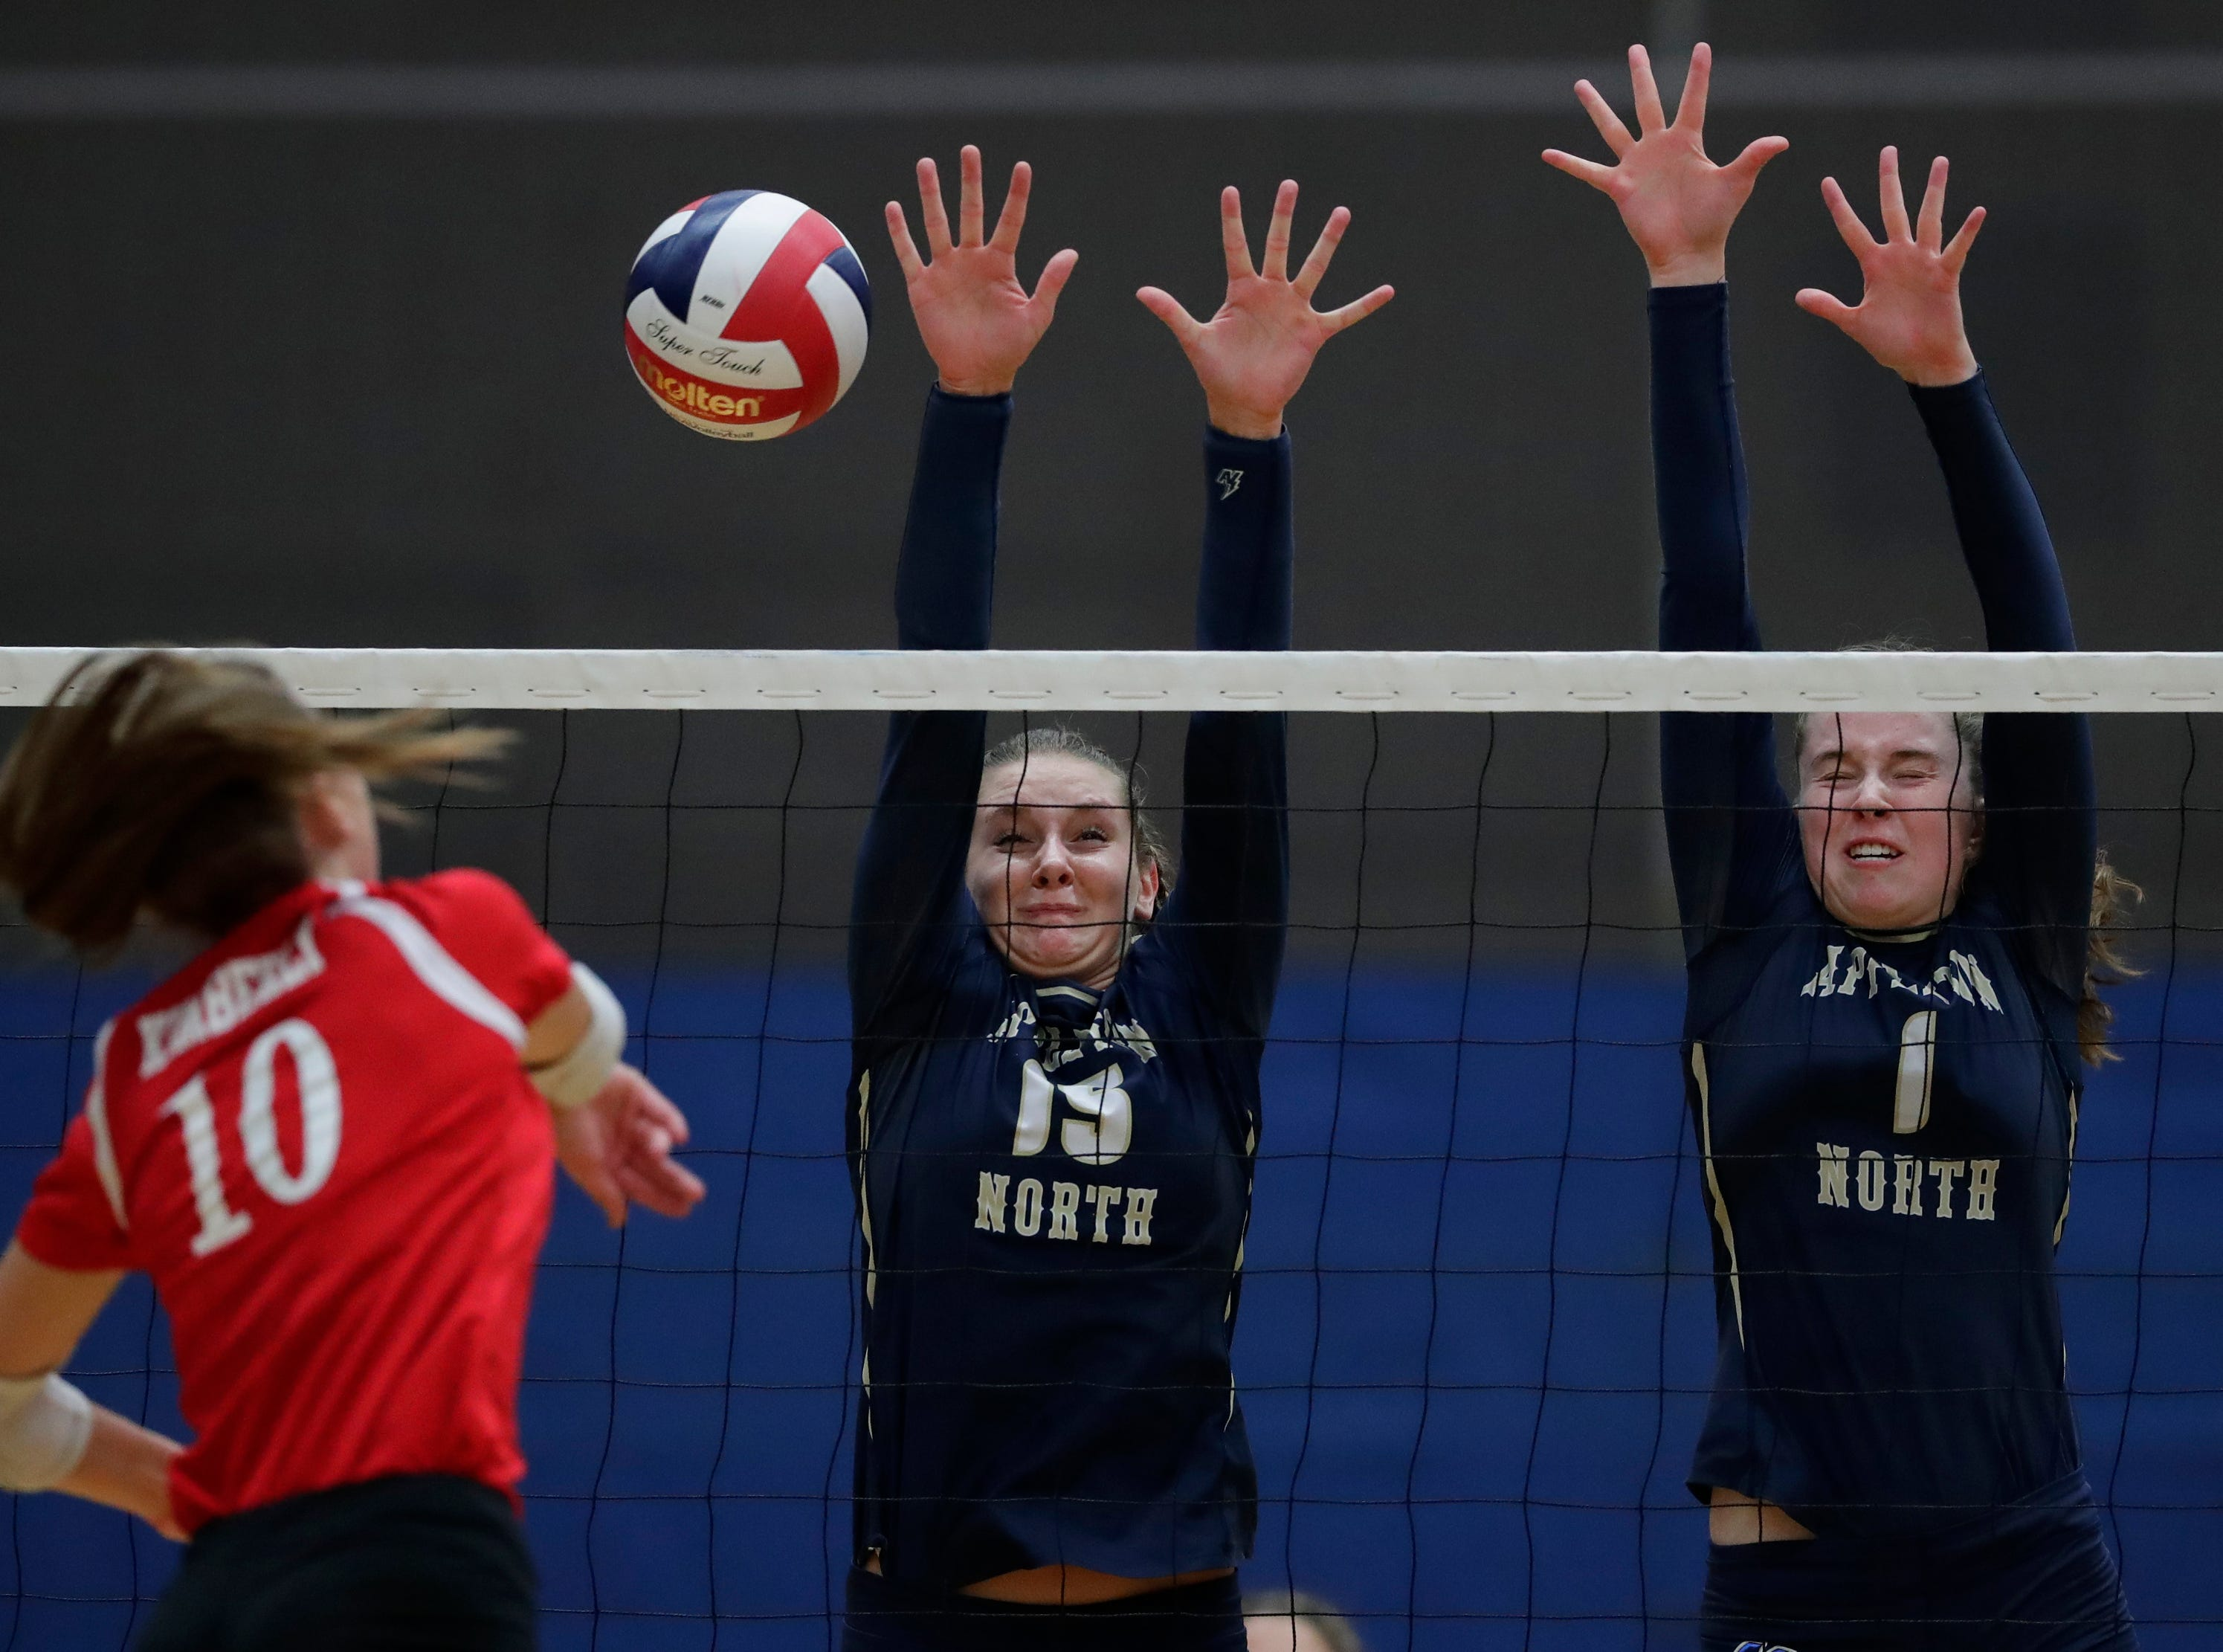 Kimberly High School's Courtney Pearson (10) spikes the ball against Appleton North High School's Taylor Vanden Berg (15) and Sarah Ganser (10) during their girls volleyball match Thursday, Sept. 27, 2018, in Appleton, Wis. 